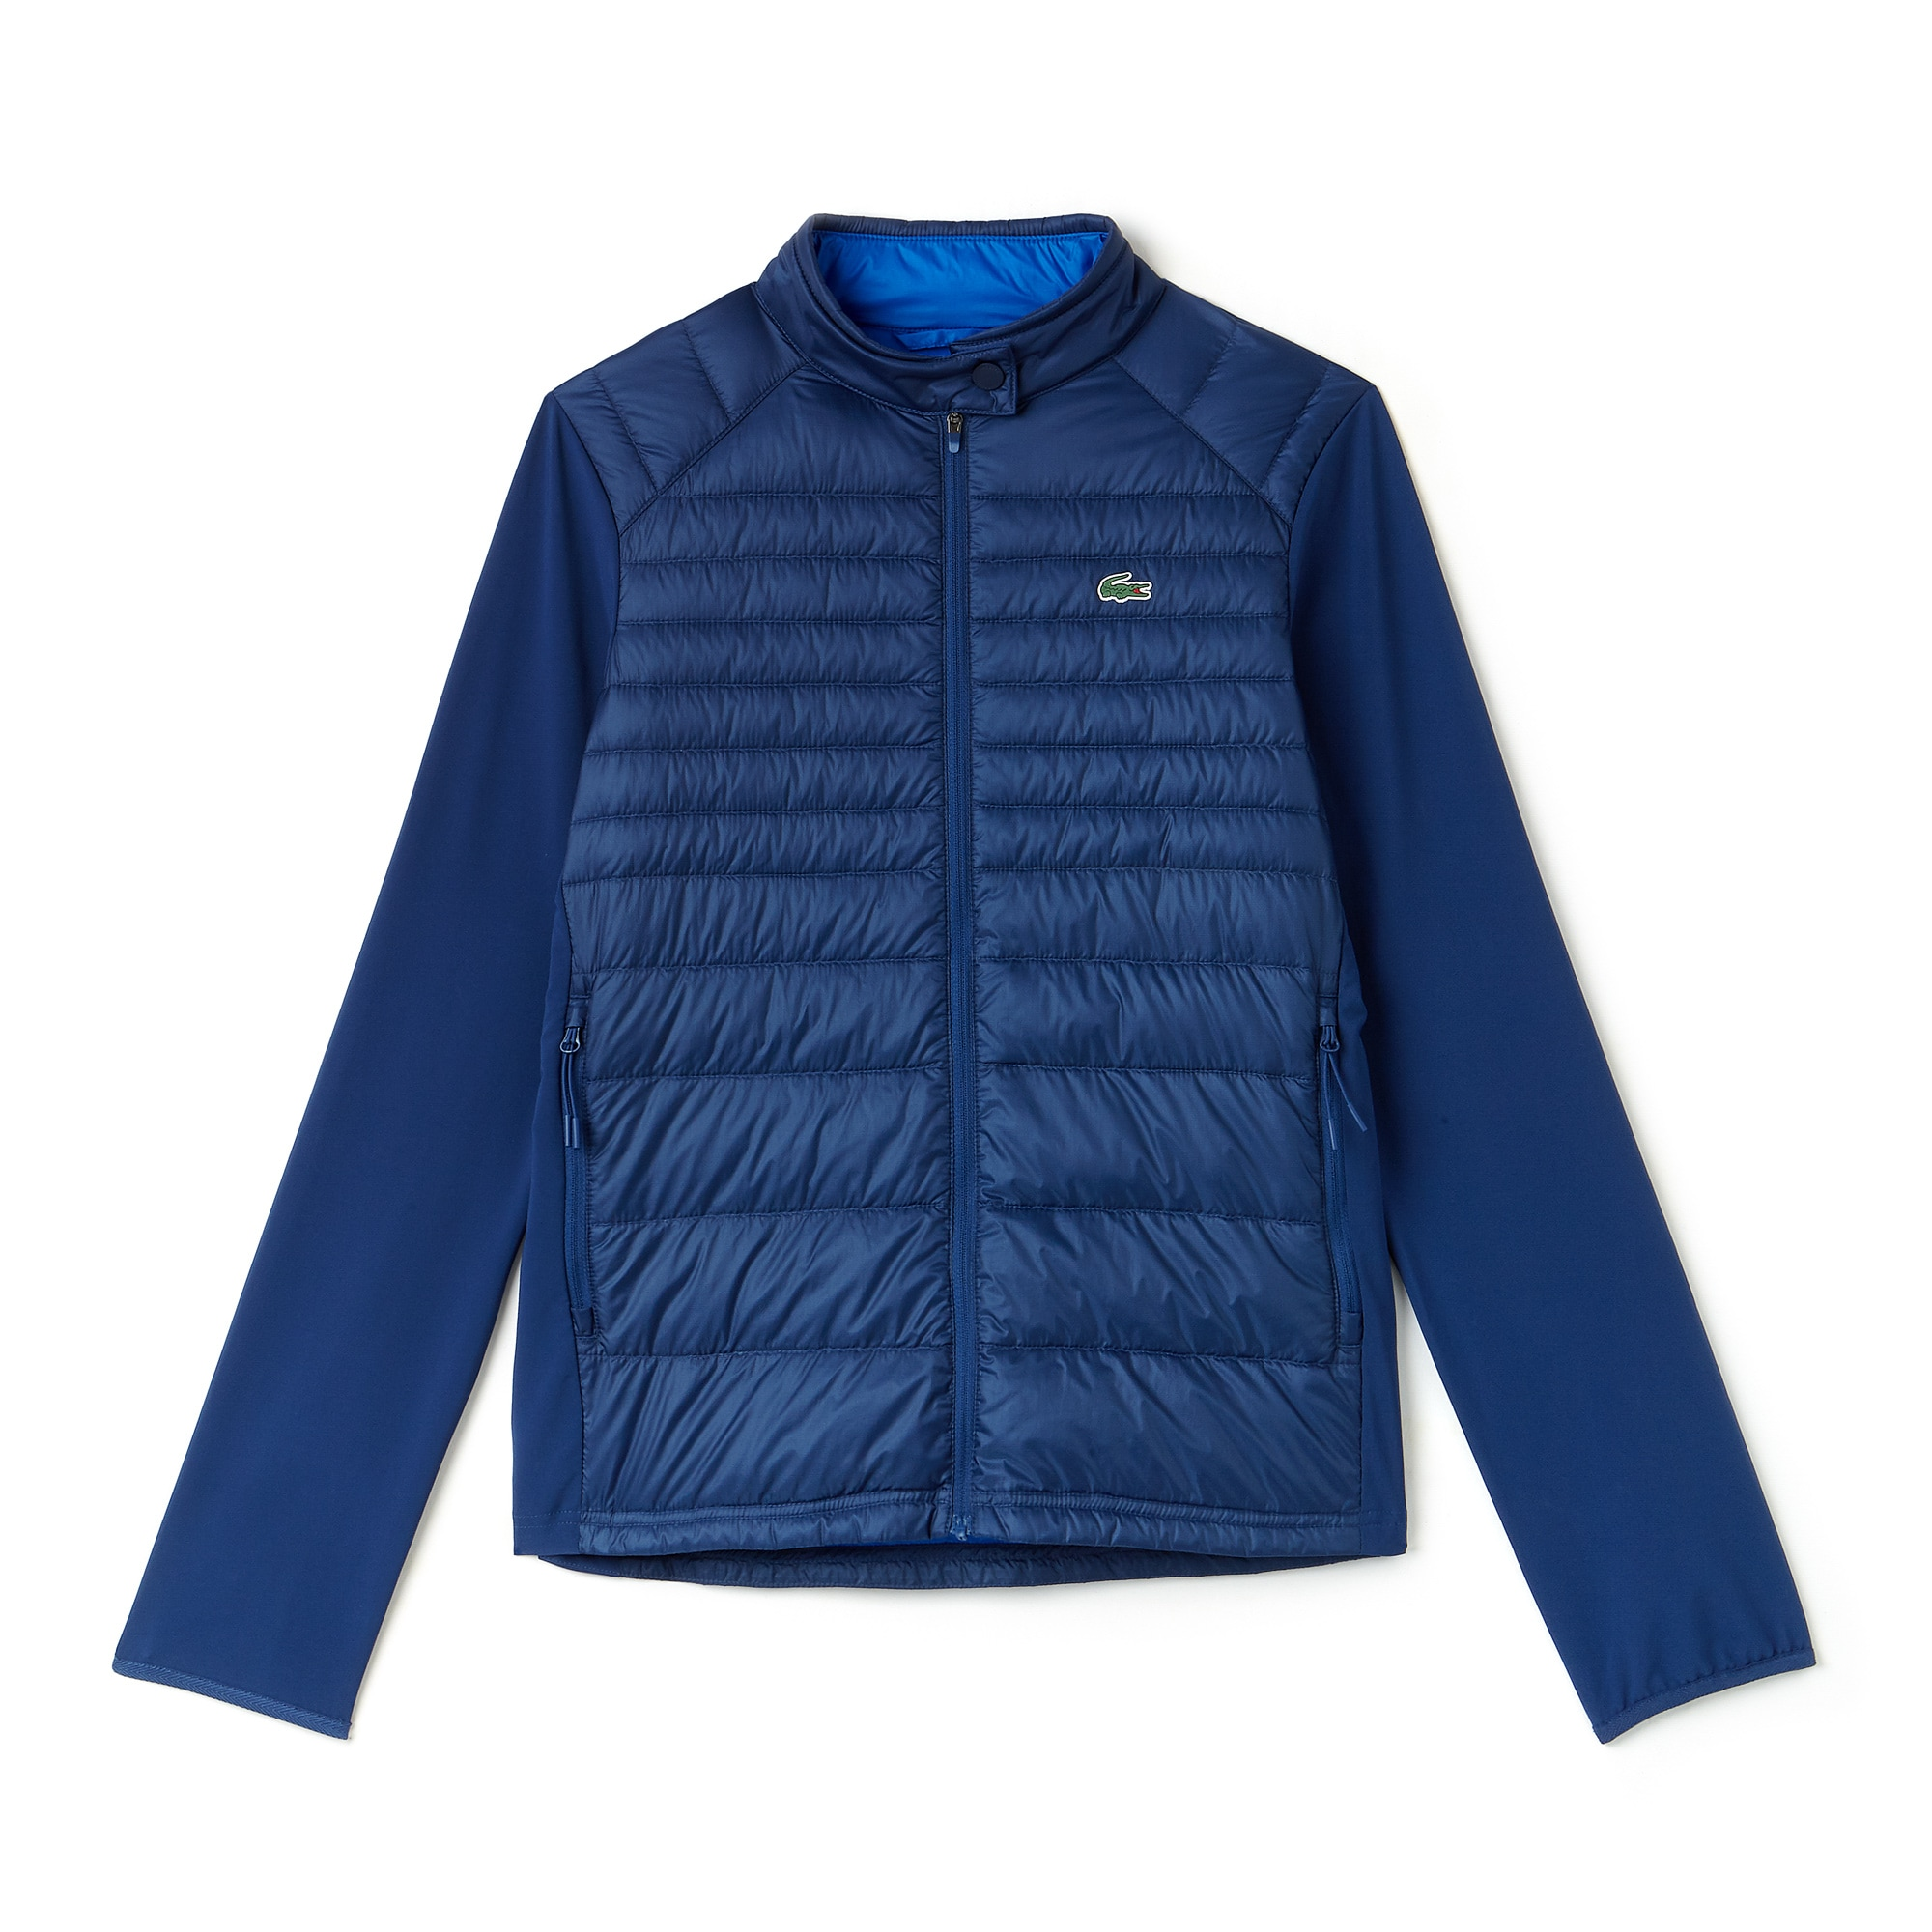 Women's Lacoste SPORT Quilted Technical Golf Jacket